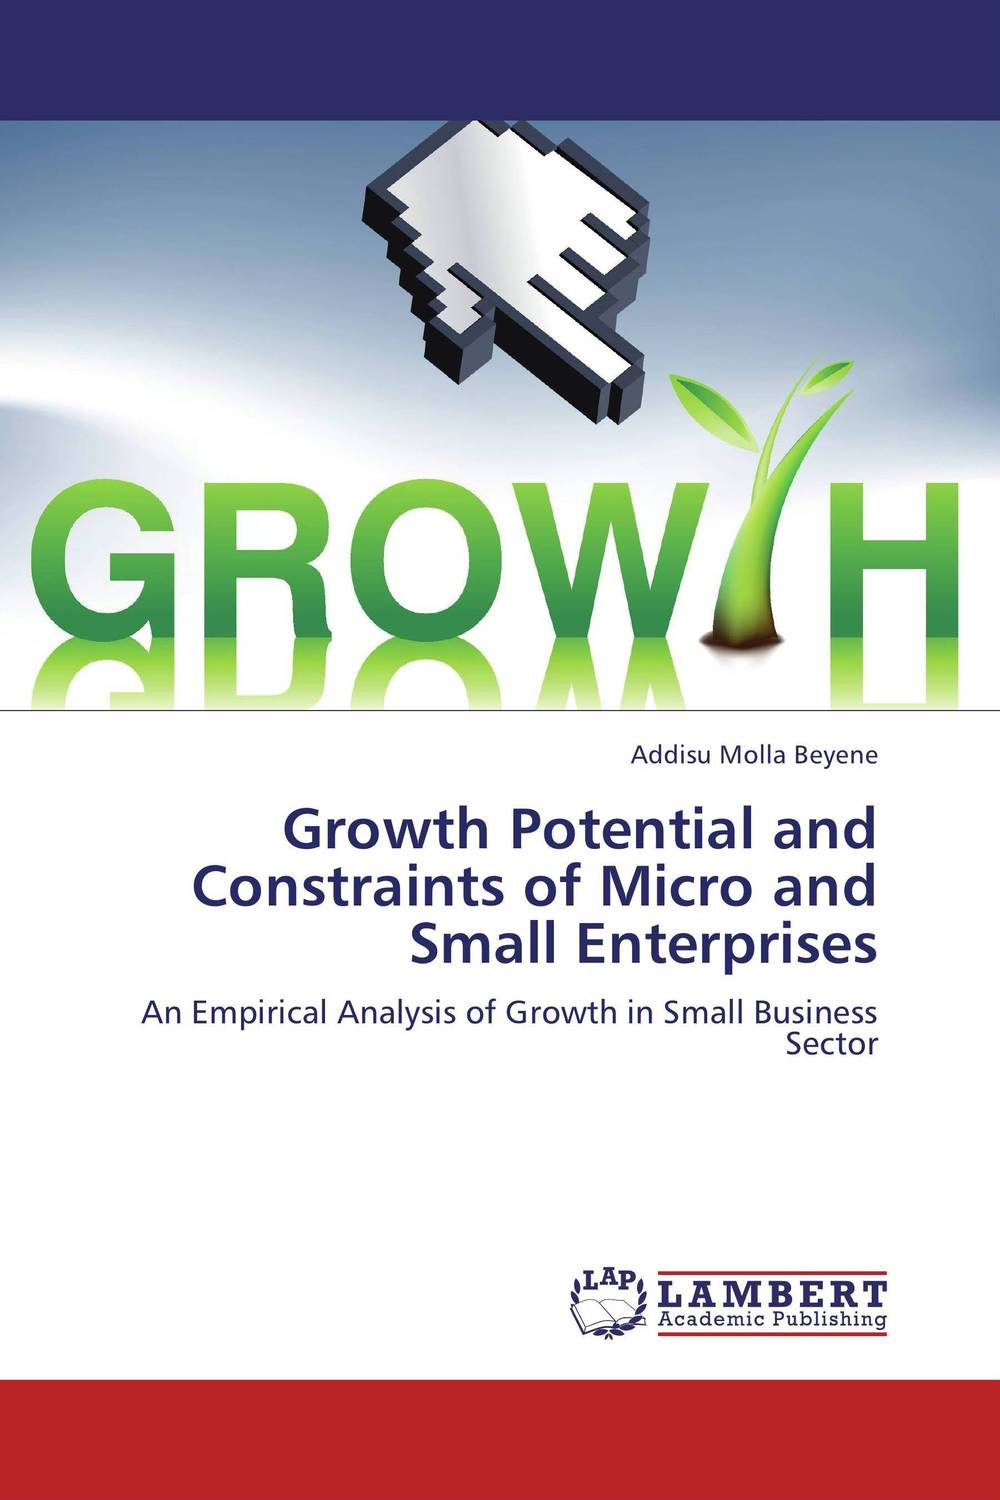 Growth Potential and Constraints of Micro and Small Enterprises david thomson g mastering the 7 essentials of high growth companies effective lessons to grow your business